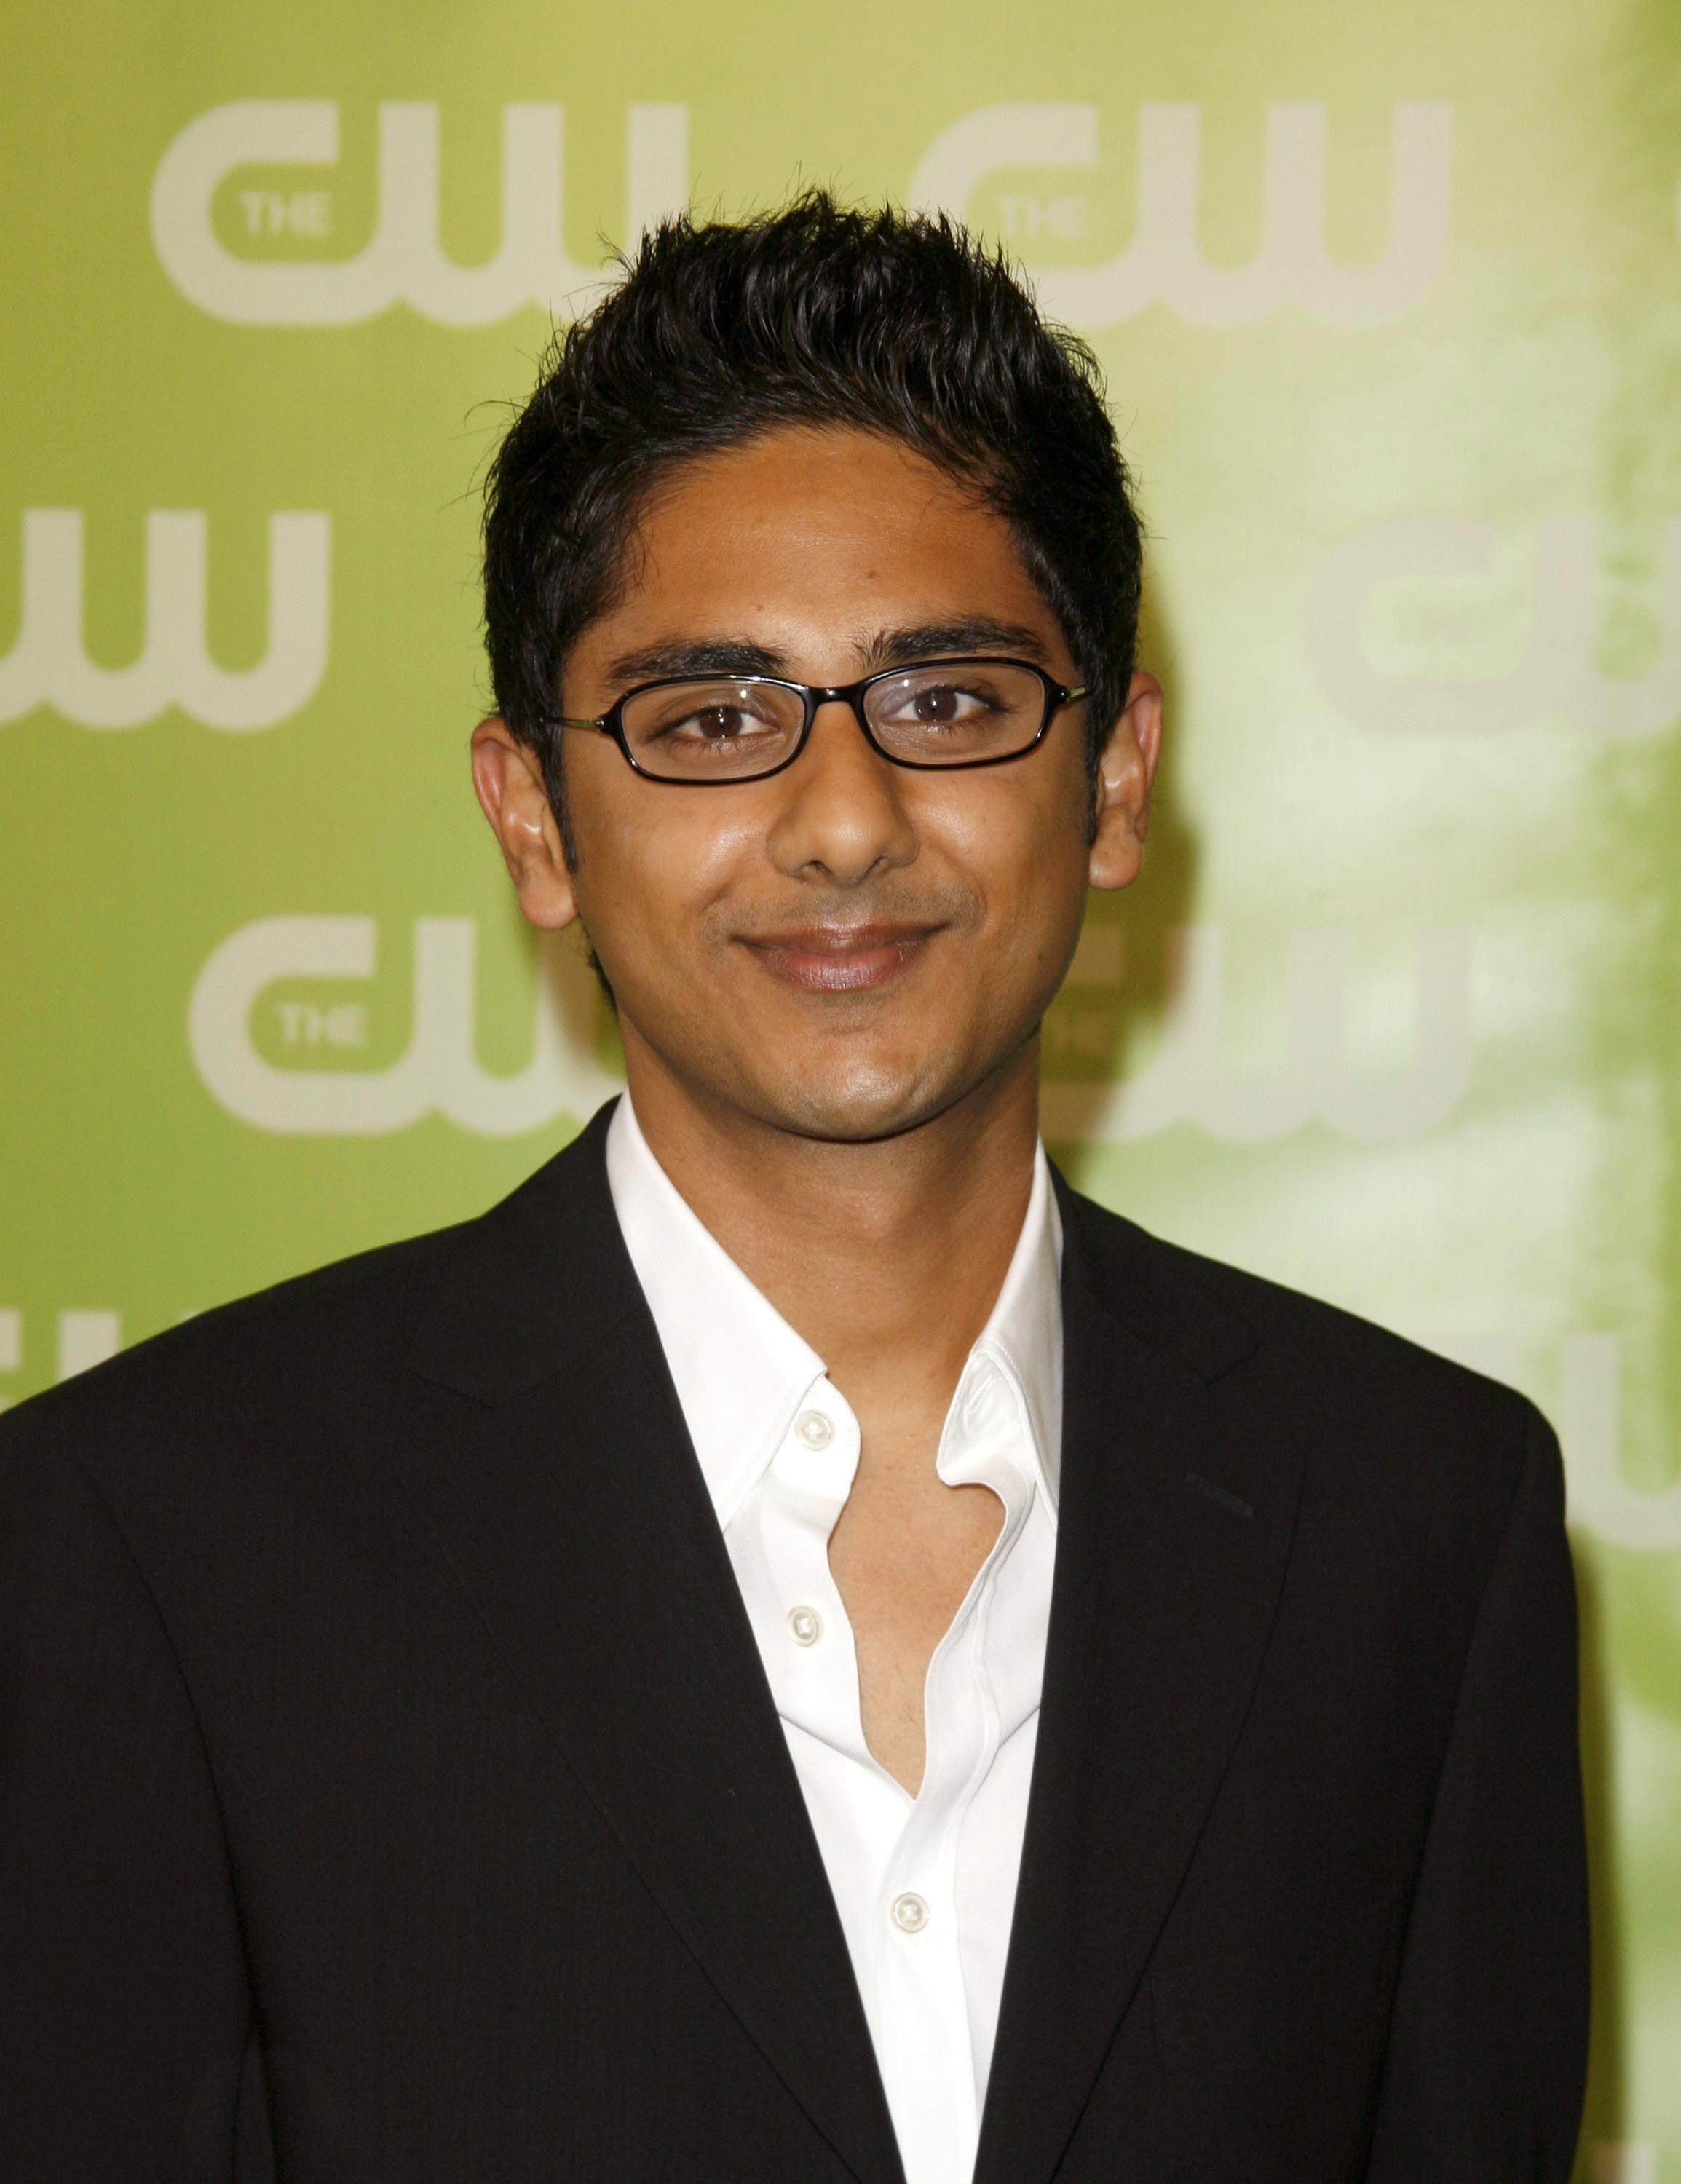 Adhir Kalyan at The CW upfront